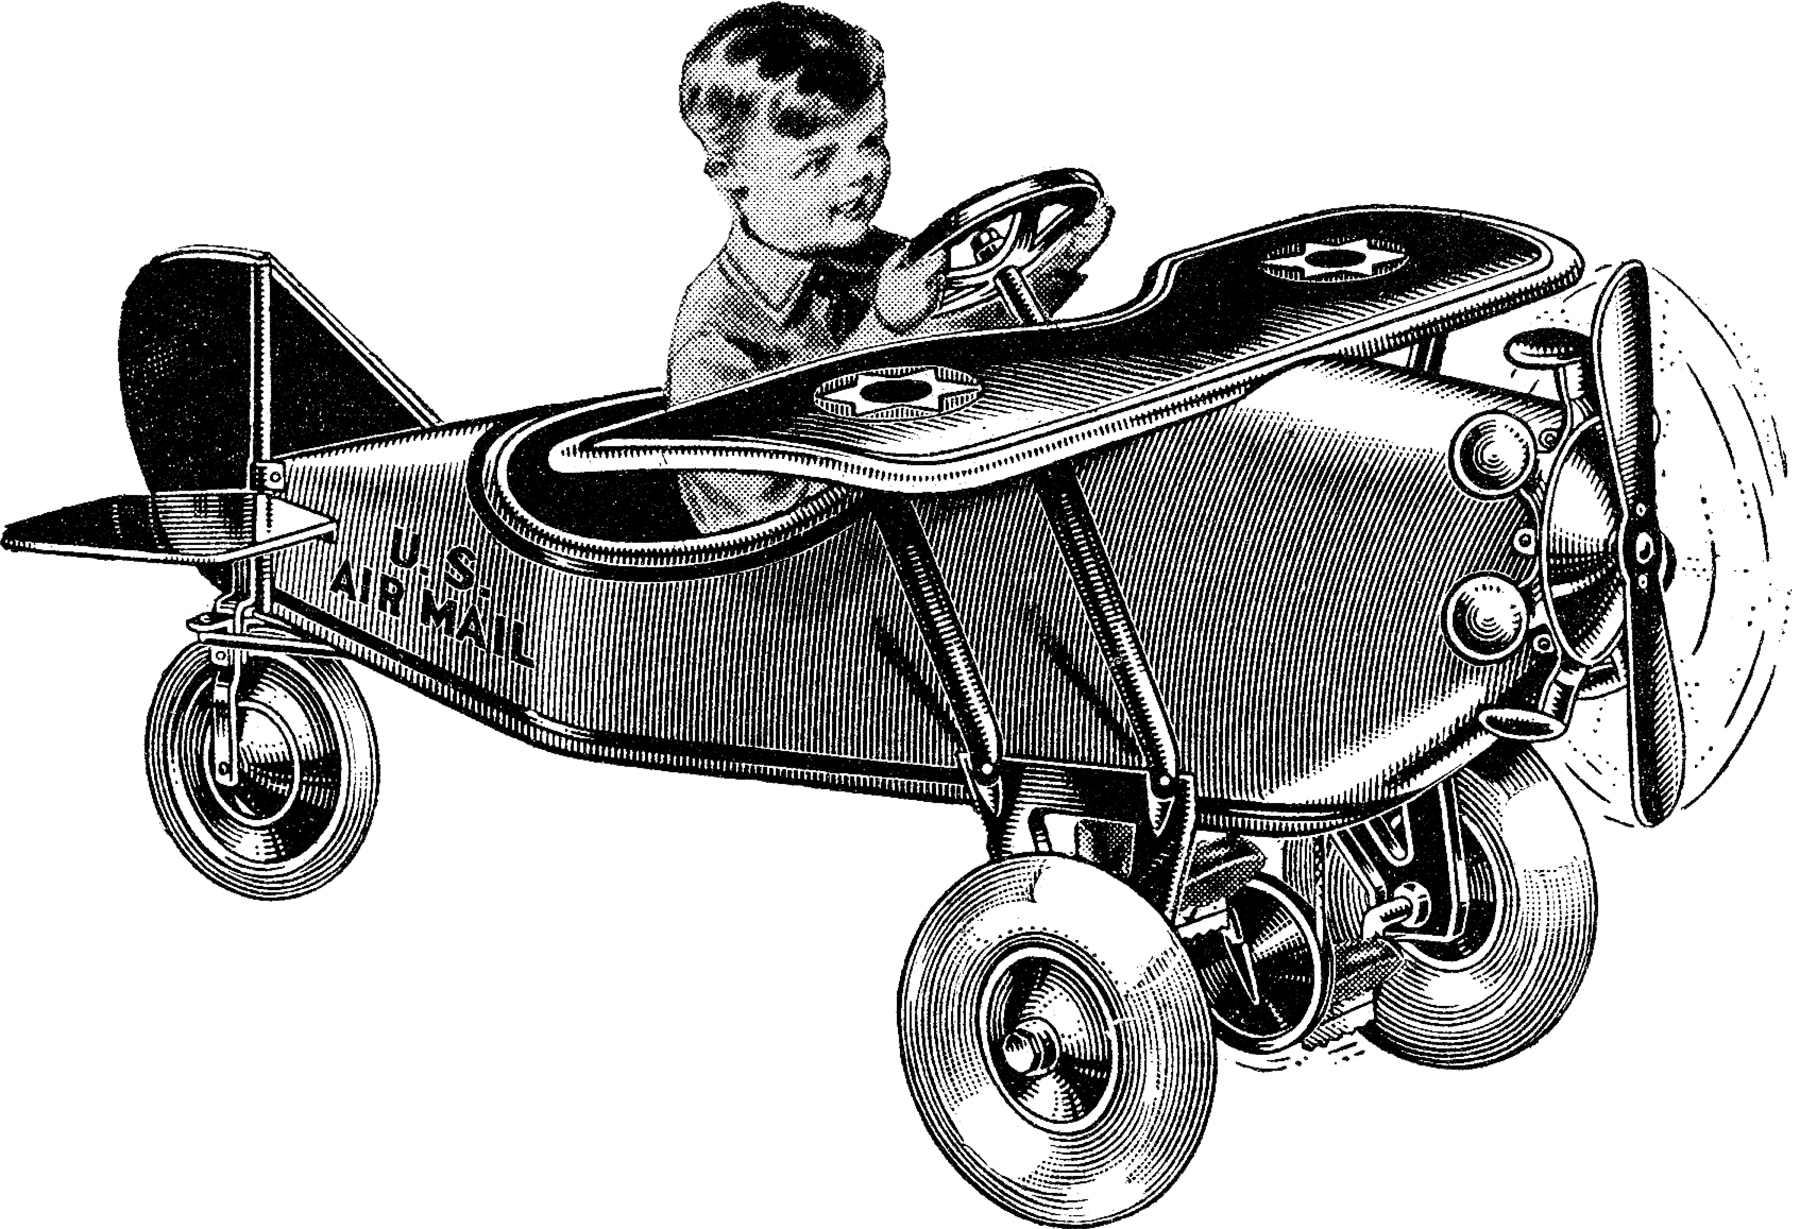 Vintage Toy Airplane Image